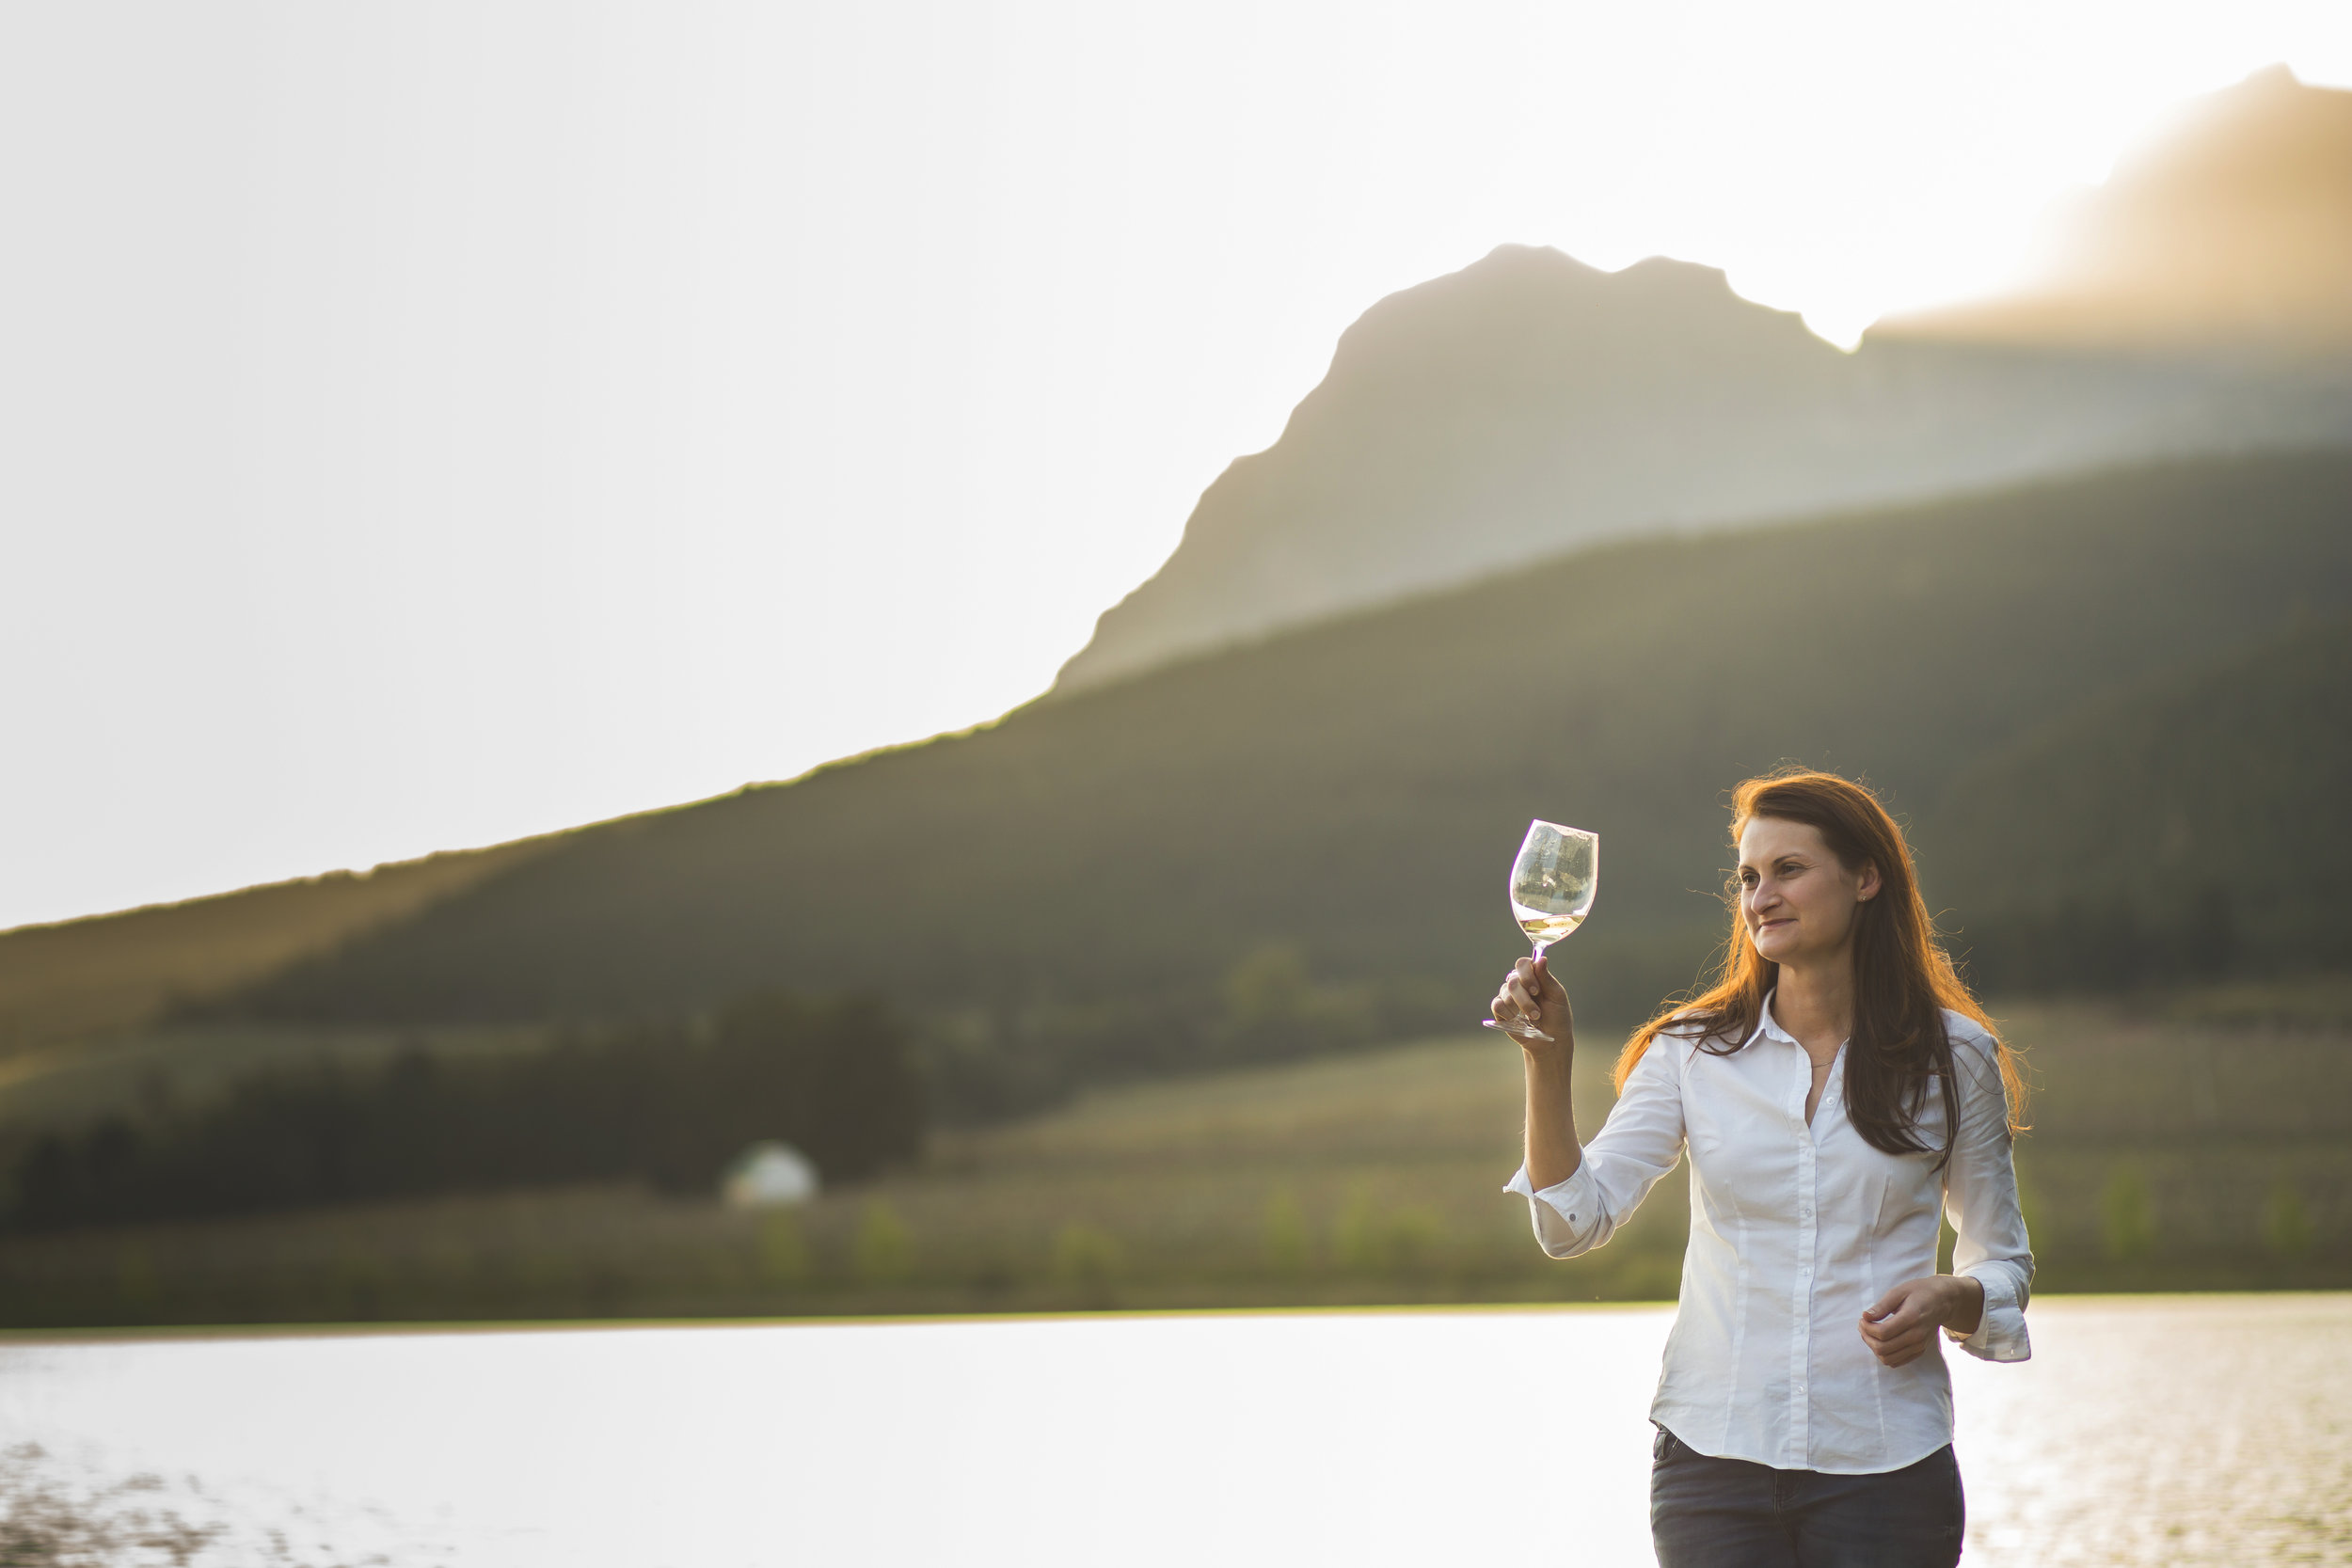 Illimis - Named as one of South Africa's top Chenin Blanc producers in Decanter July 2019, and best in Elgin.Namibian born Lucinda Heyns first studied viticulture in South Africa before heading across to the States to gain valuable experience with the likes of Raj Parr, Sashi Moorman and at Screaming Eagle. Returning to the Cape, she worked as a viticulturist at Jordan estate and Mulderbosch, founding Illimis Wines in 2015. Illimis is the Latin for clarity, which underpins her philosophy of winemaking, minimal intervention and integrity of fruit from the vineyard all the way into the bottle. Being a viticulturist at heart, she believes that everything starts with the vines. Every vintage is unique, and her hope is that every wine is a tribute to the endless pursuit of refining the potential of each site the Illimis wines are made from. It's a philosophy very close to our hearts and we are so excited to see how her wines progress. The 2016 Chenin Blanc was heralded one of the best in Decanter Summer 2019, and that's just her second vintage!Click on wines below for further details and overview of tasting notes.